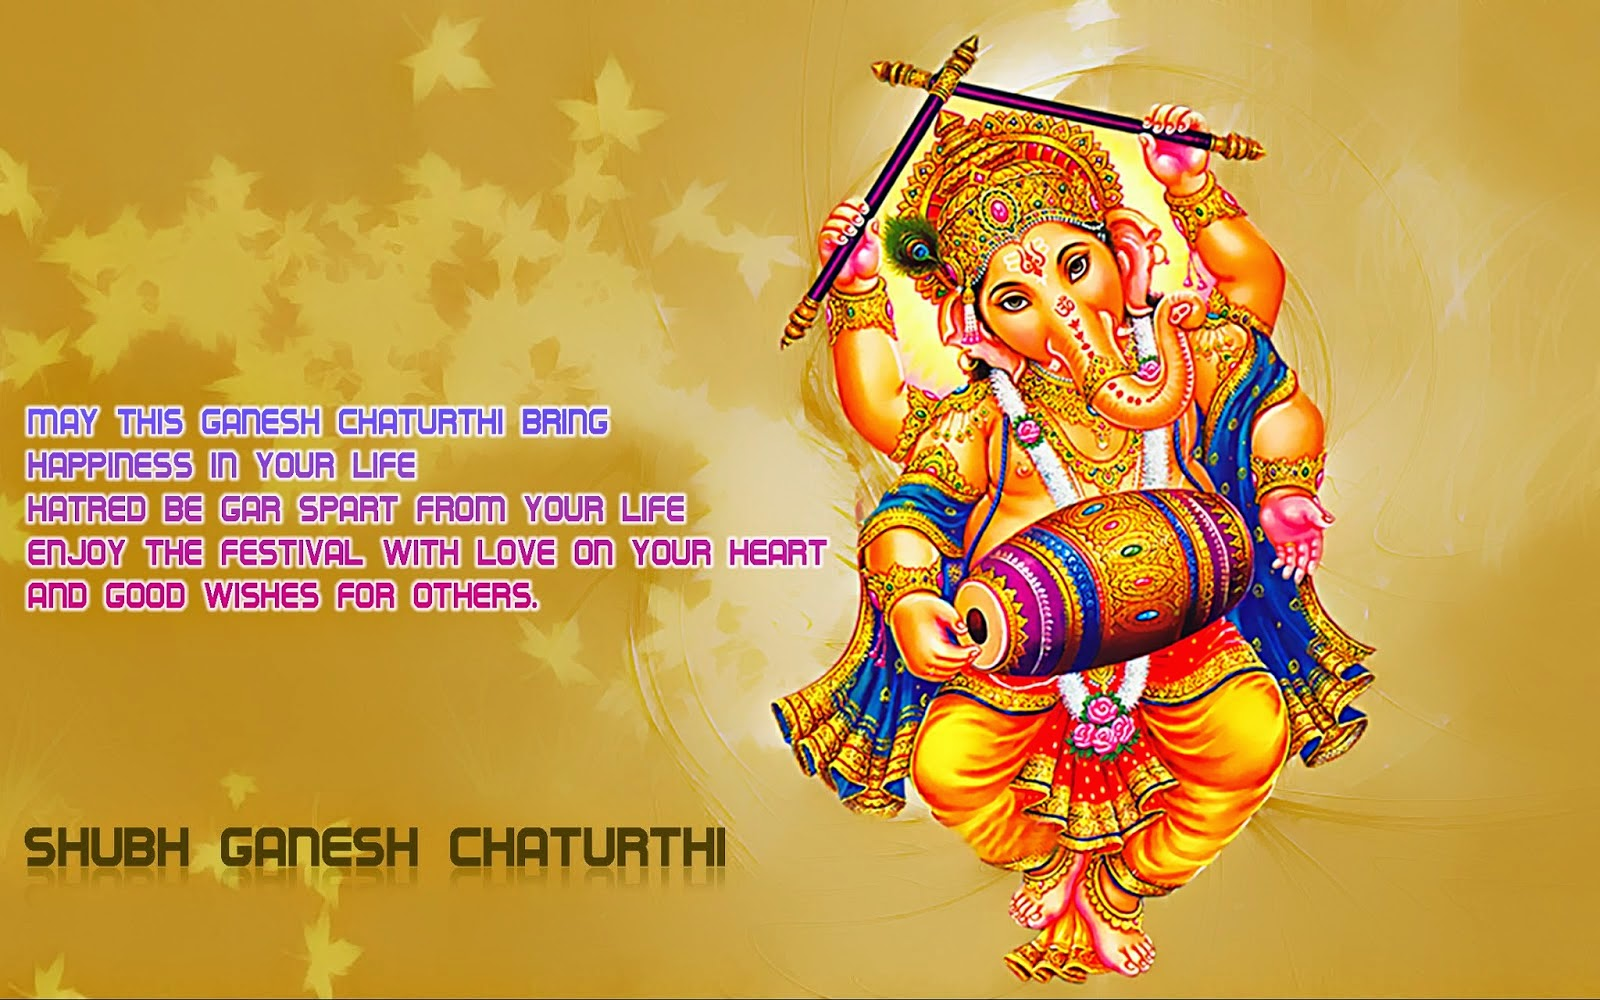 Subh ganesh chaturthi SMS Wallpaper